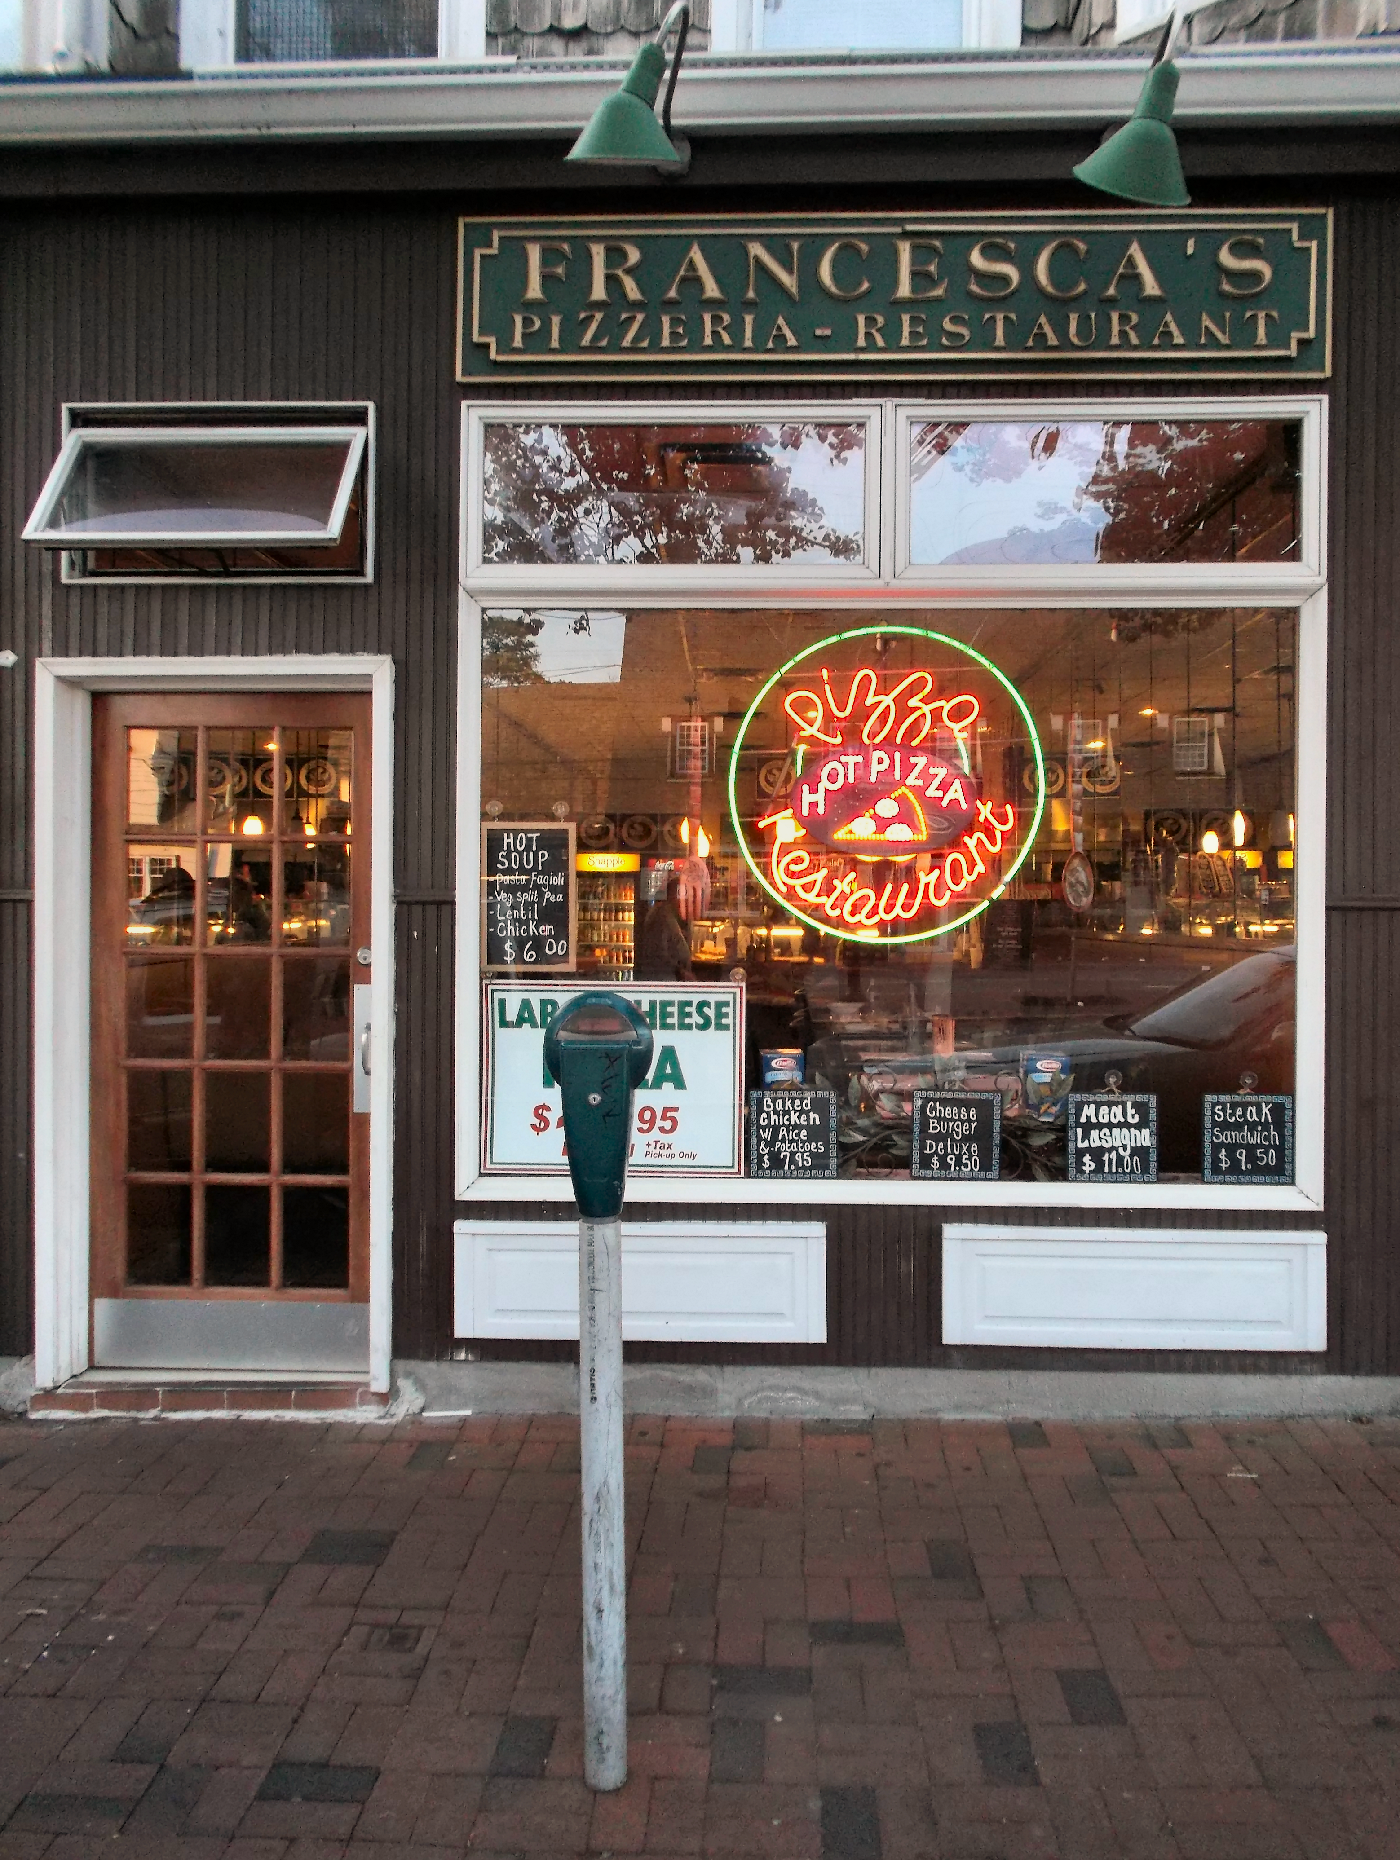 The BEST Pizza in Great Neck! Francesca's Pizzeria and Restaurant in Great Neck Plaza, NY